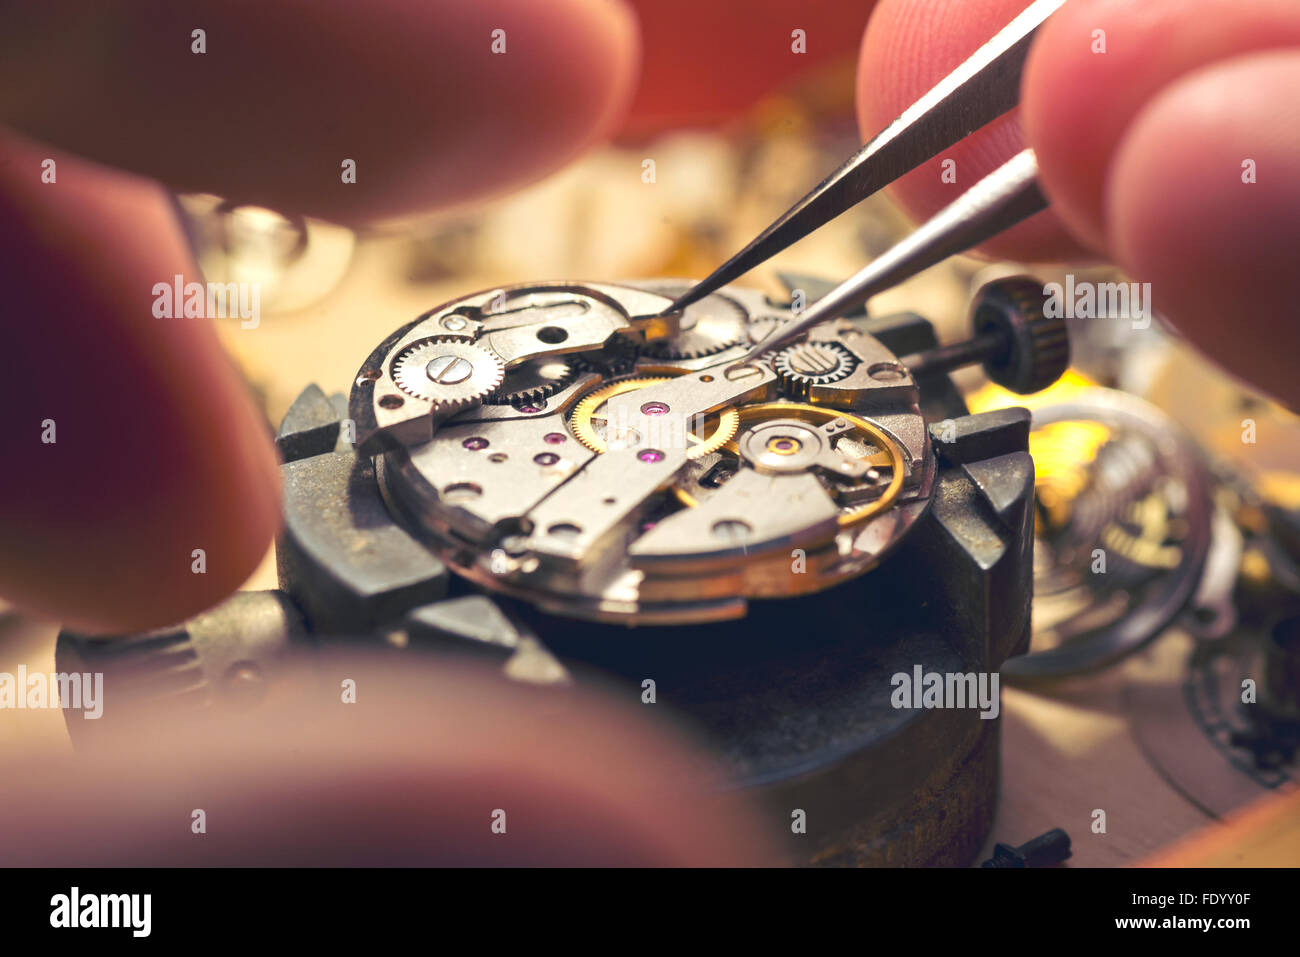 Working On A Mechanical Watch. A watch makers work top. The inside workings of a vintage mechanical watch. - Stock Image